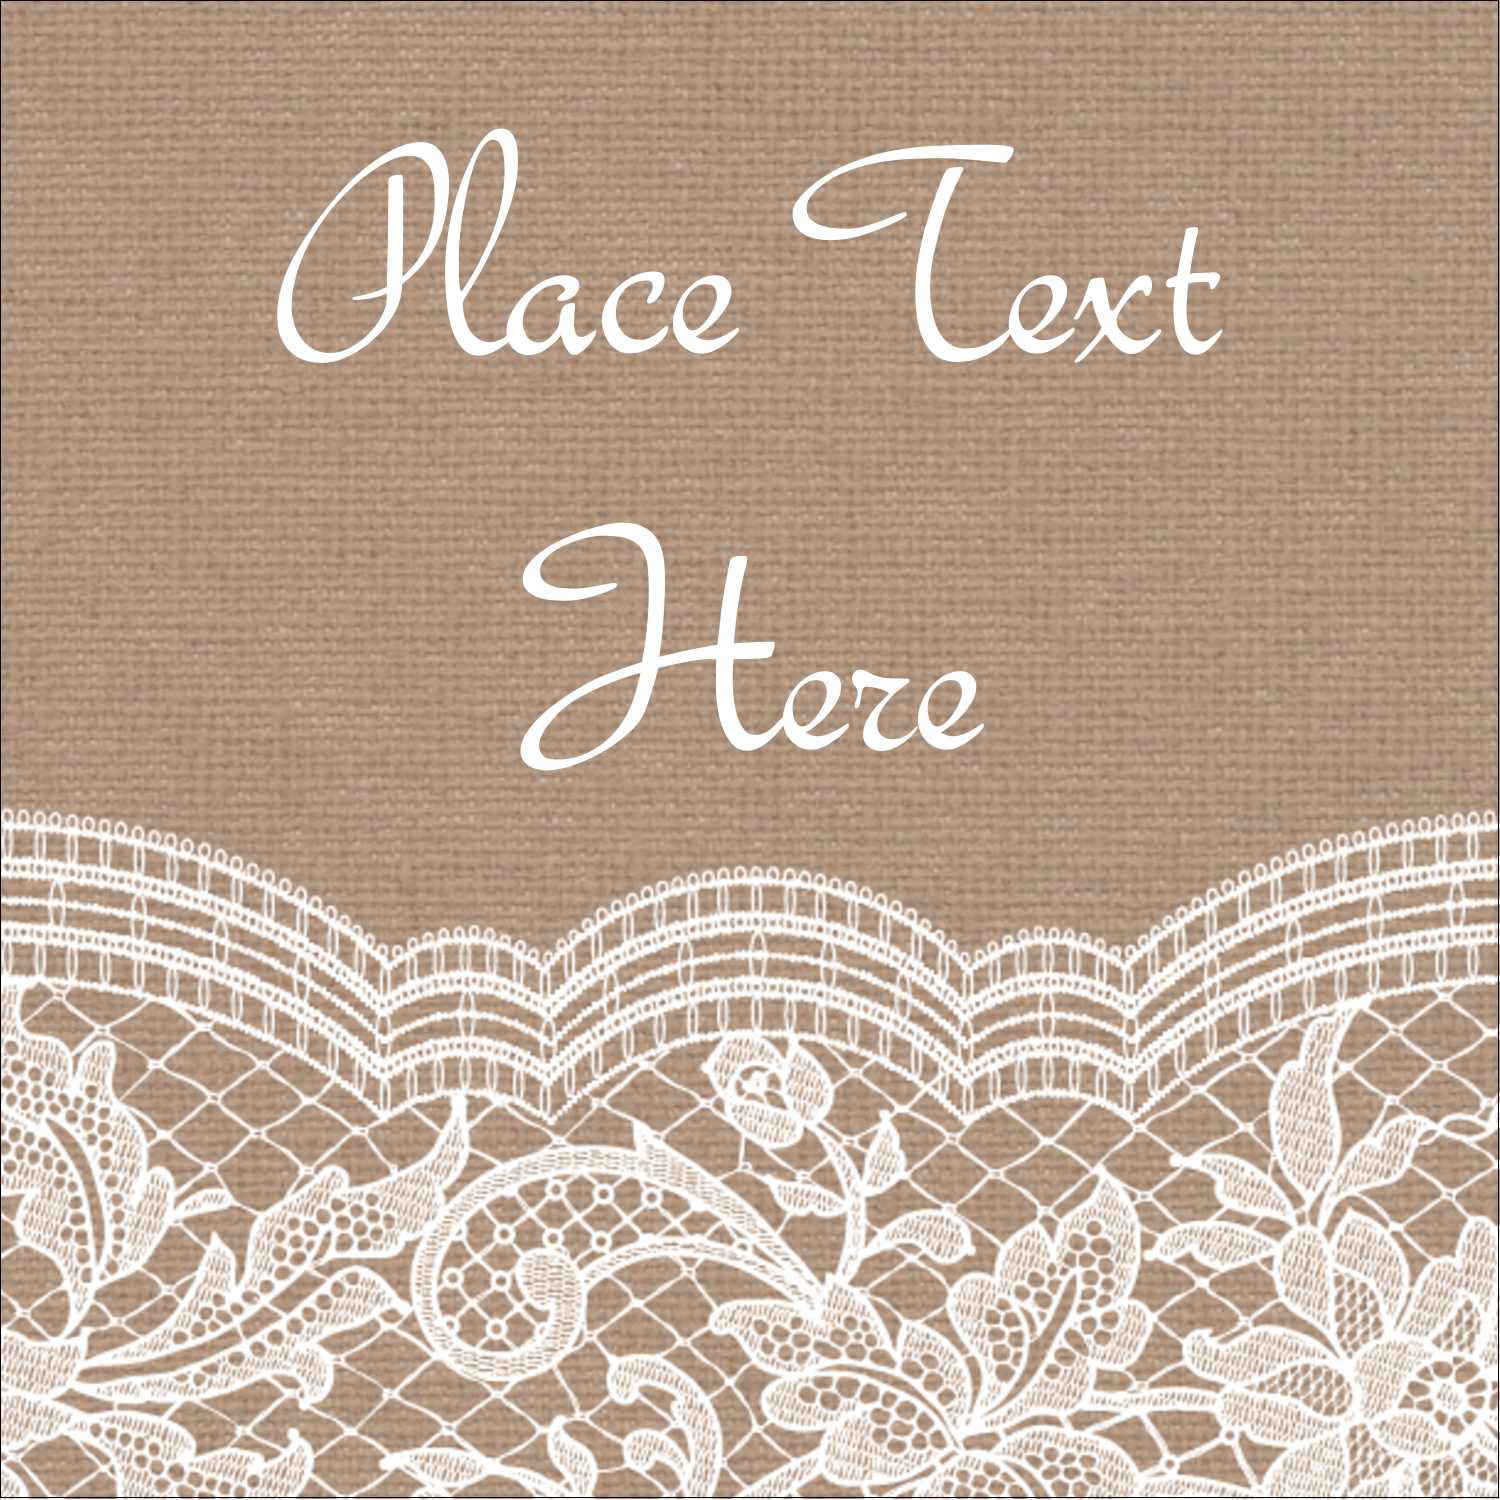 "2"" x 2"" Square Label - Burlap Lace"